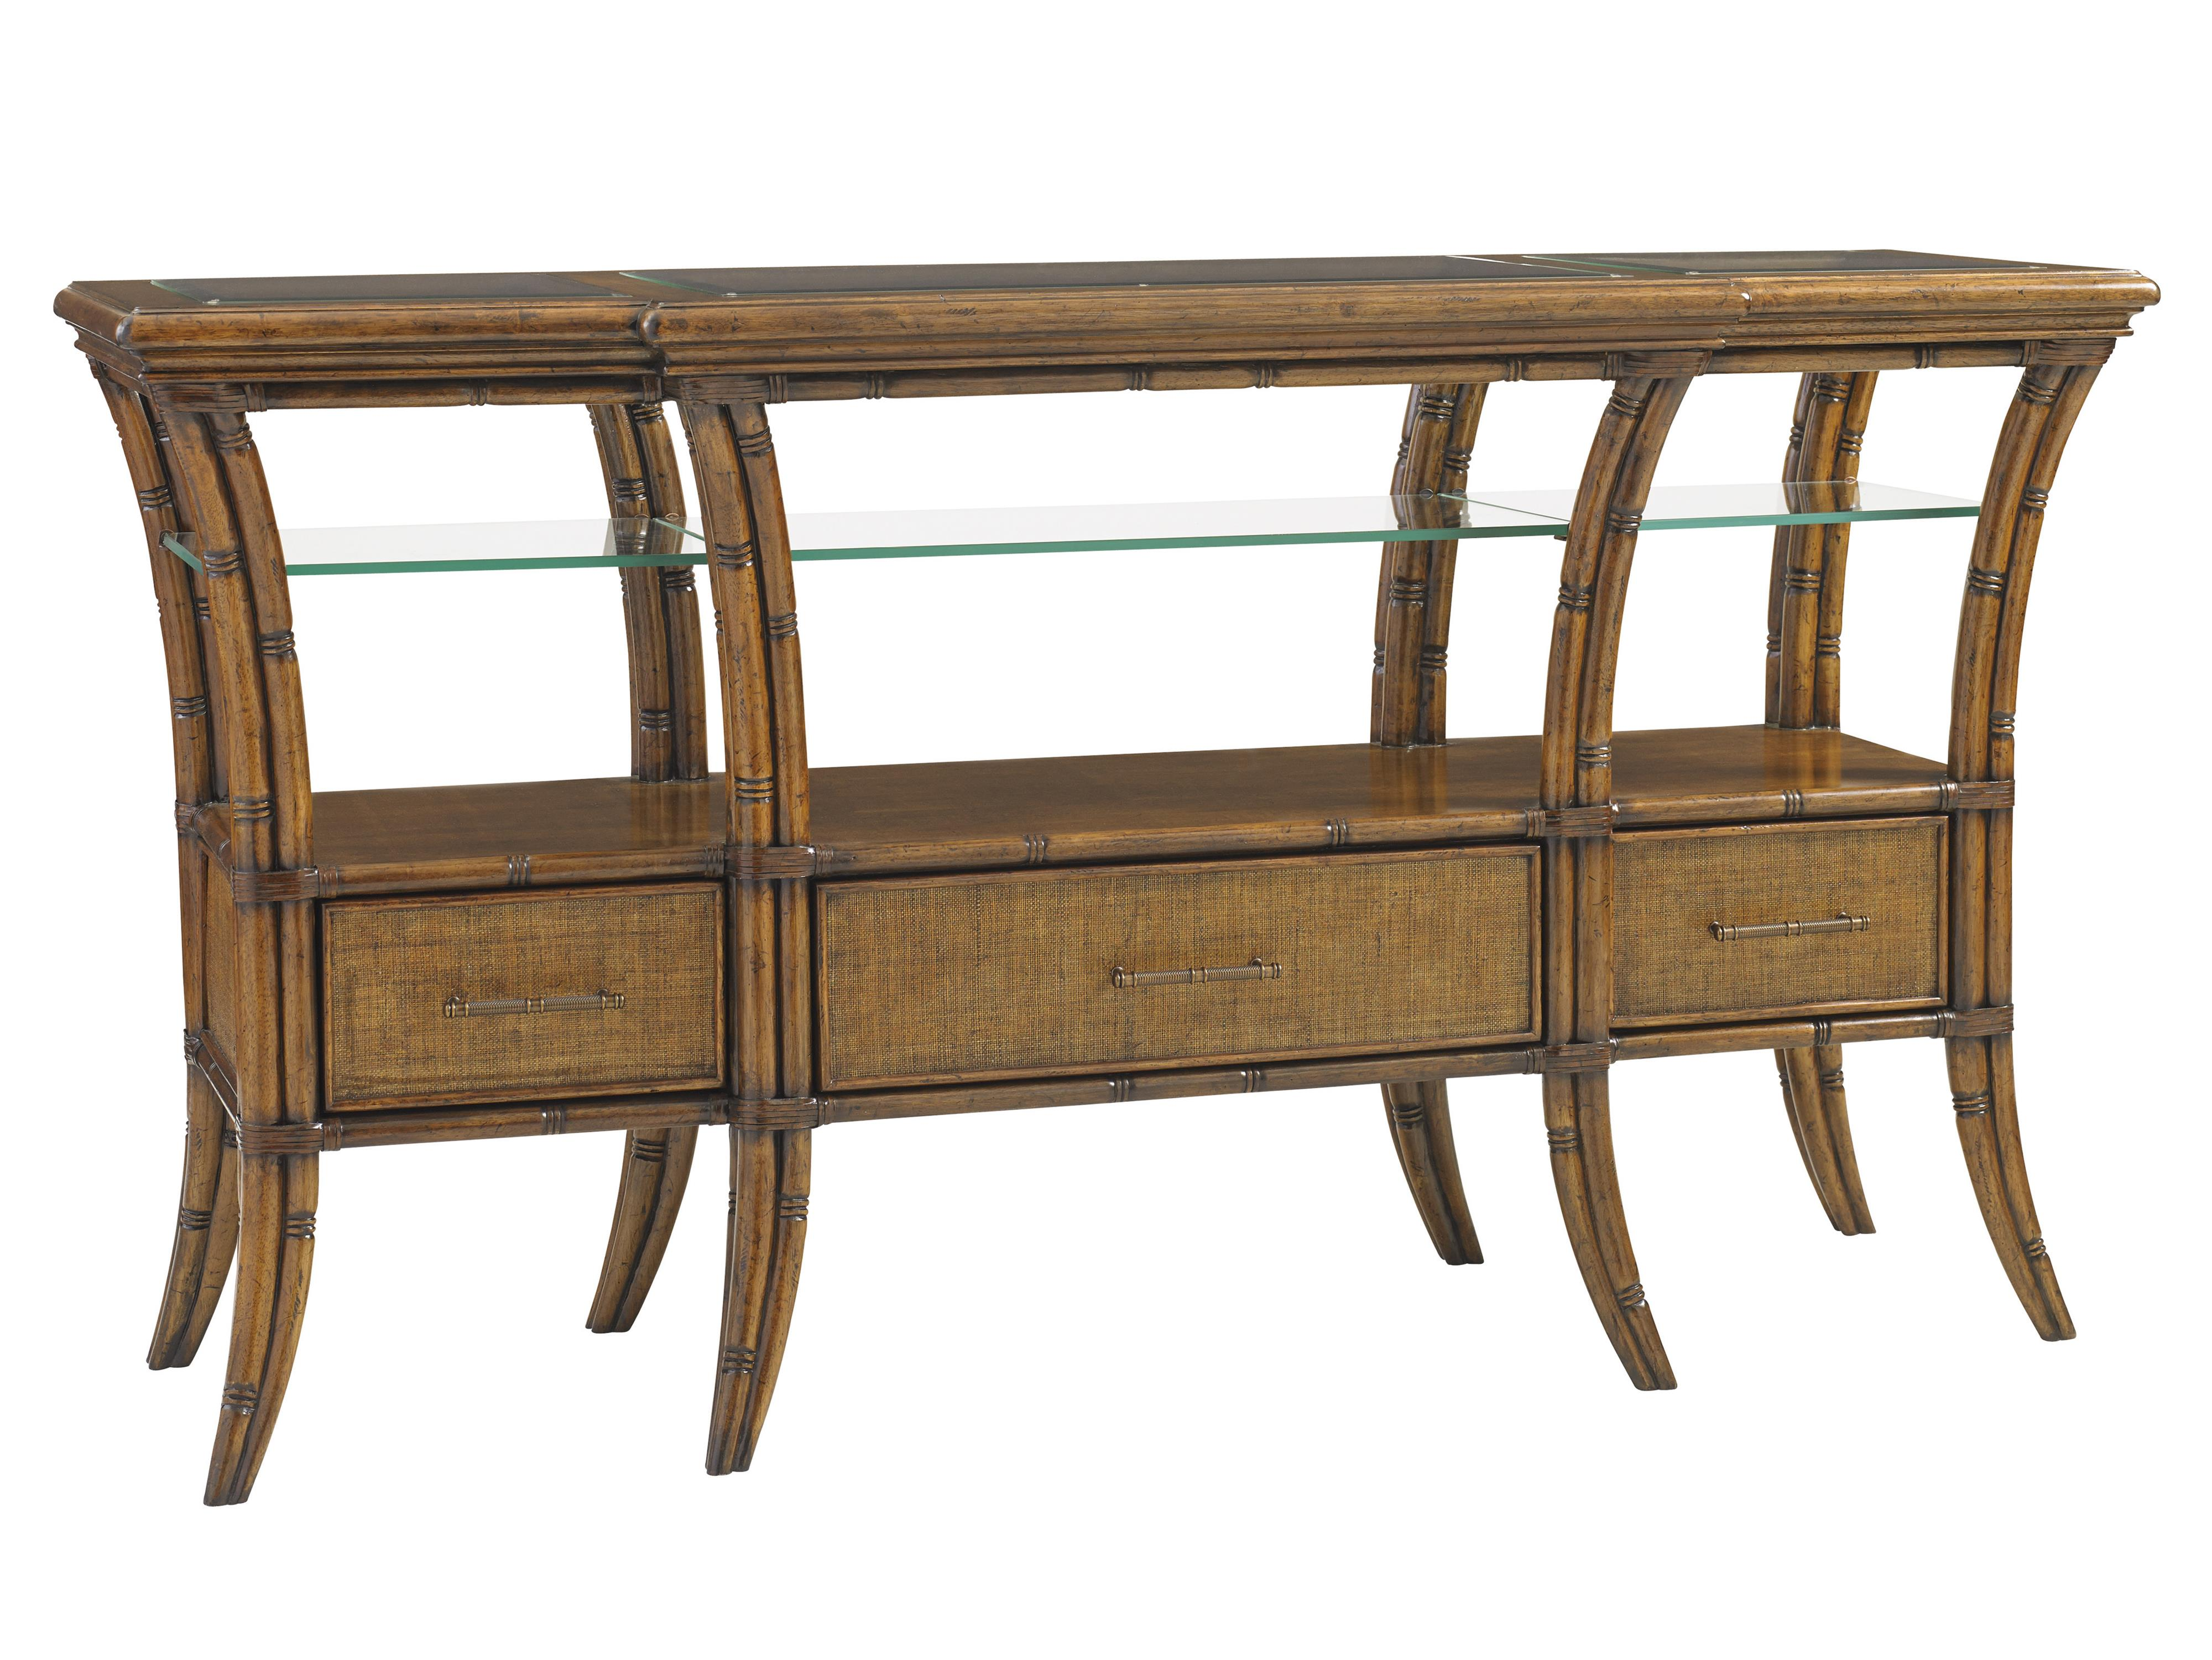 Bali Hai Oyster Reef Sideboard by Tommy Bahama Home at Baer's Furniture